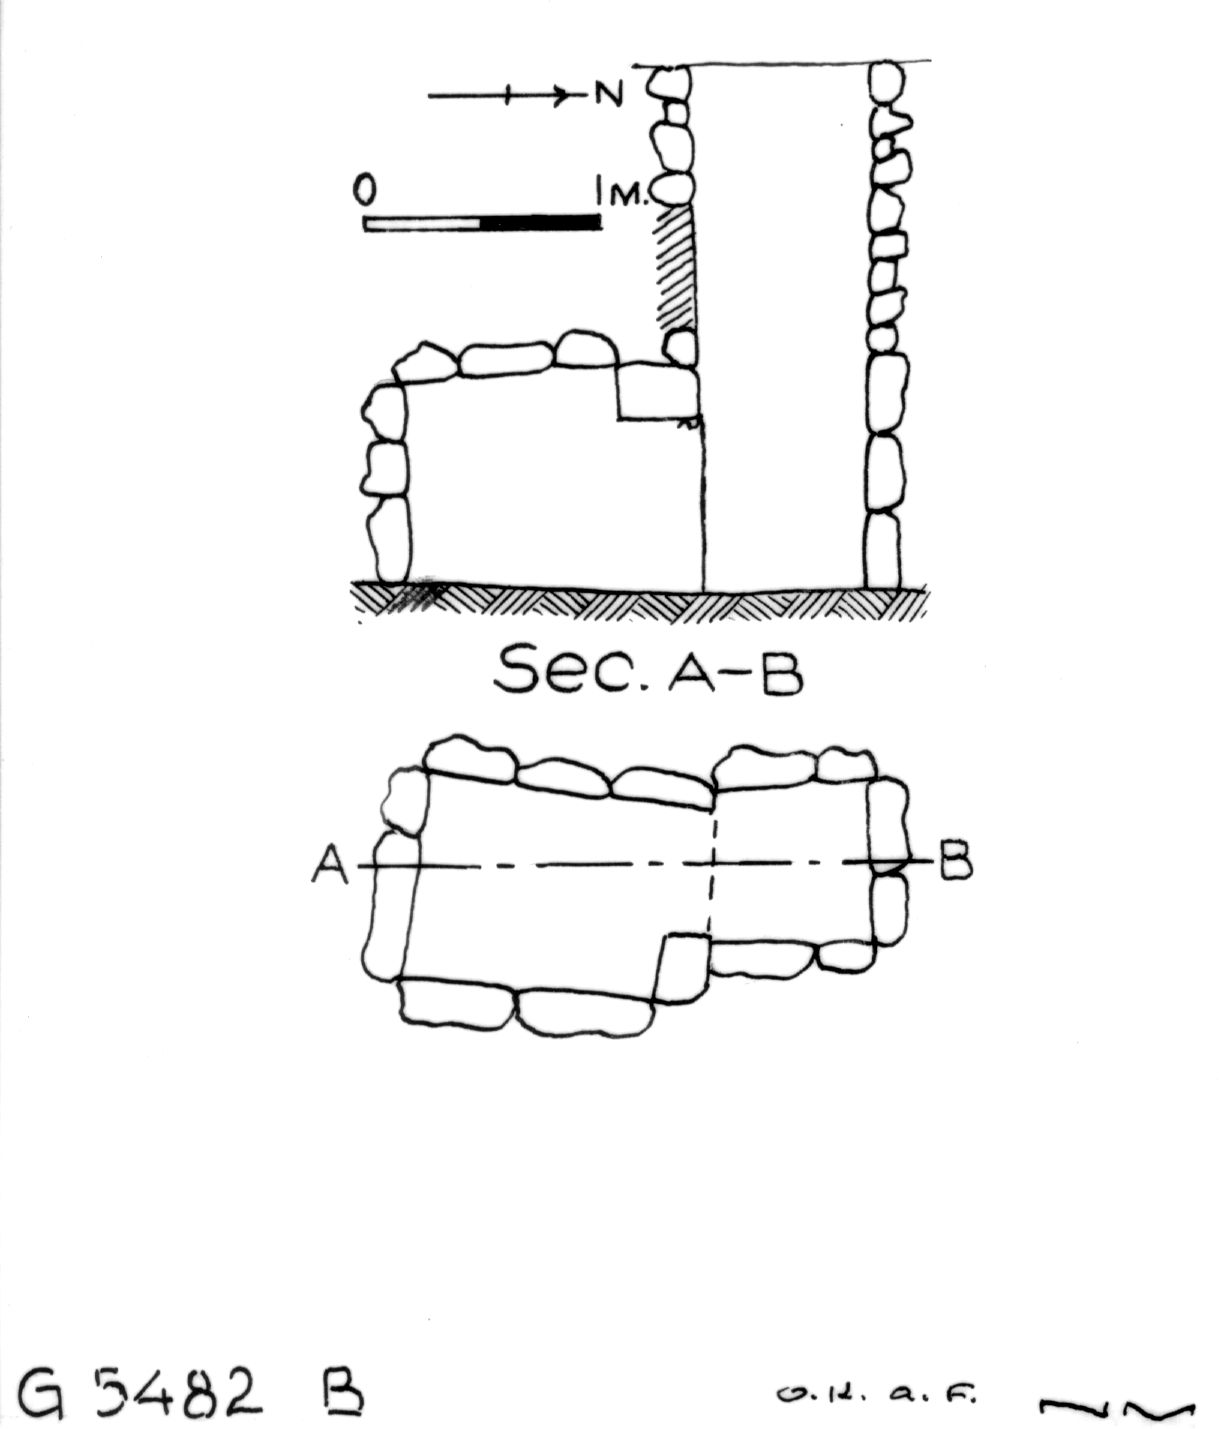 Maps and plans: G 5482, Shaft B